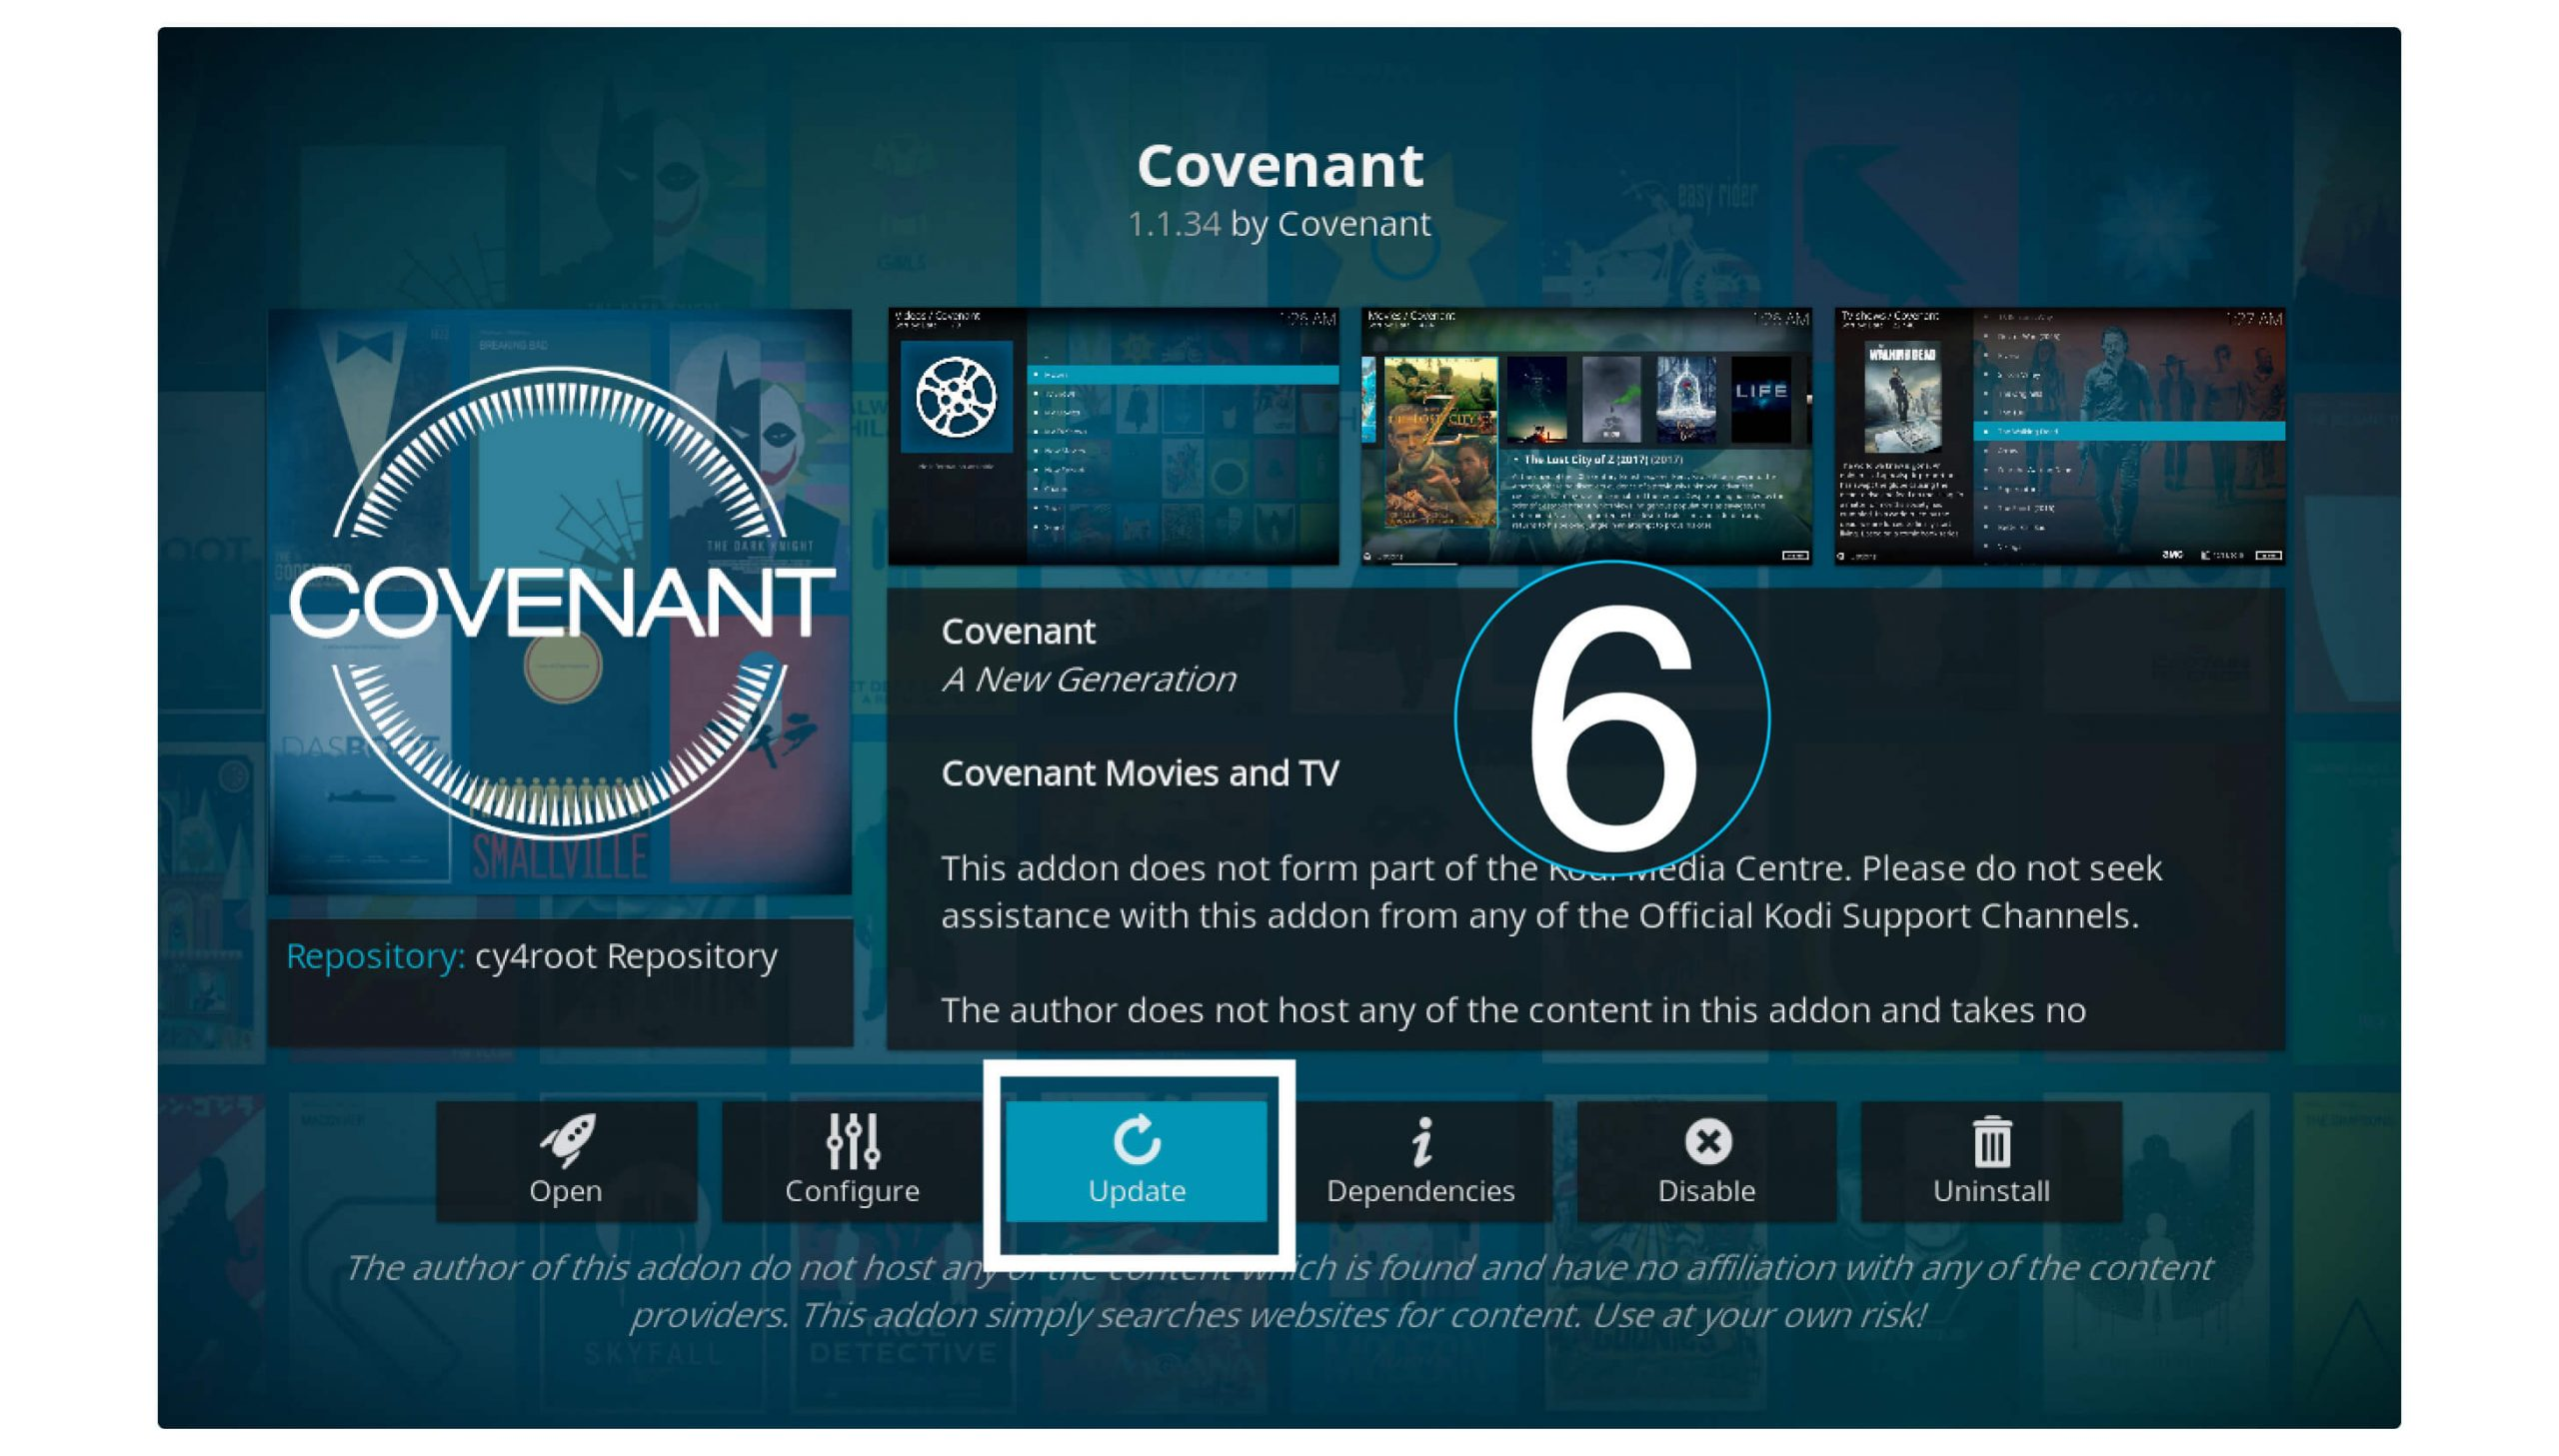 How-to-Update-Covenant-Addon-On-Kodi-2020